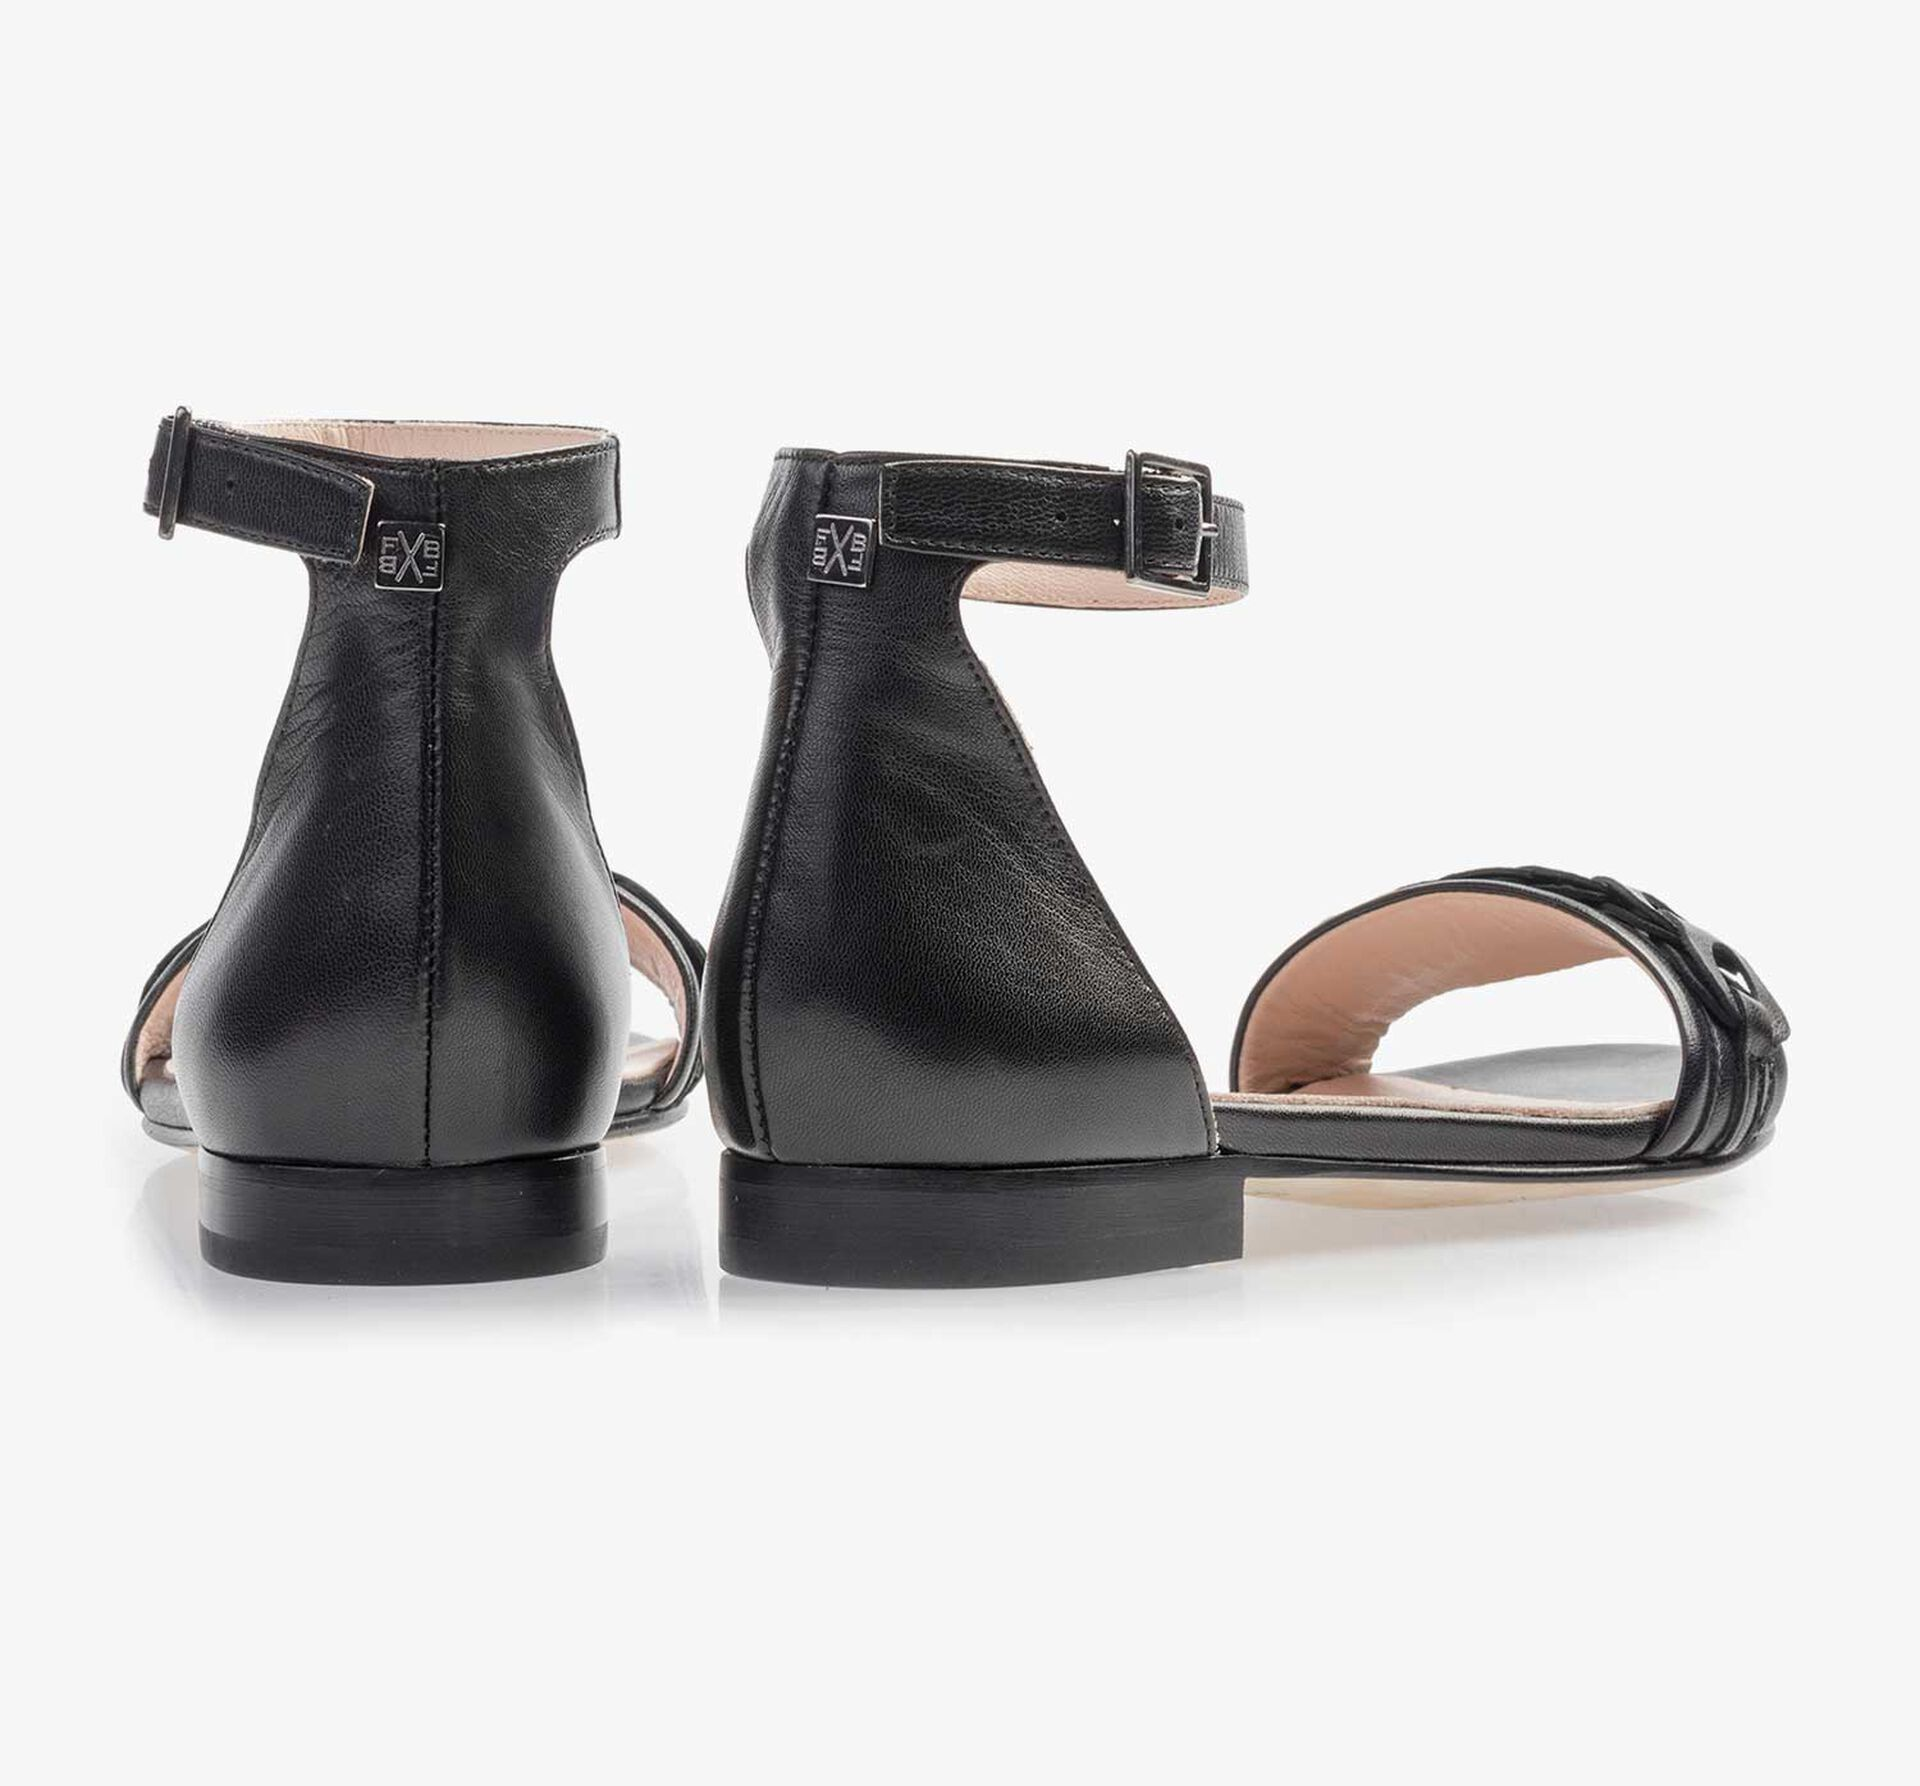 Black leather buckle closure sandal